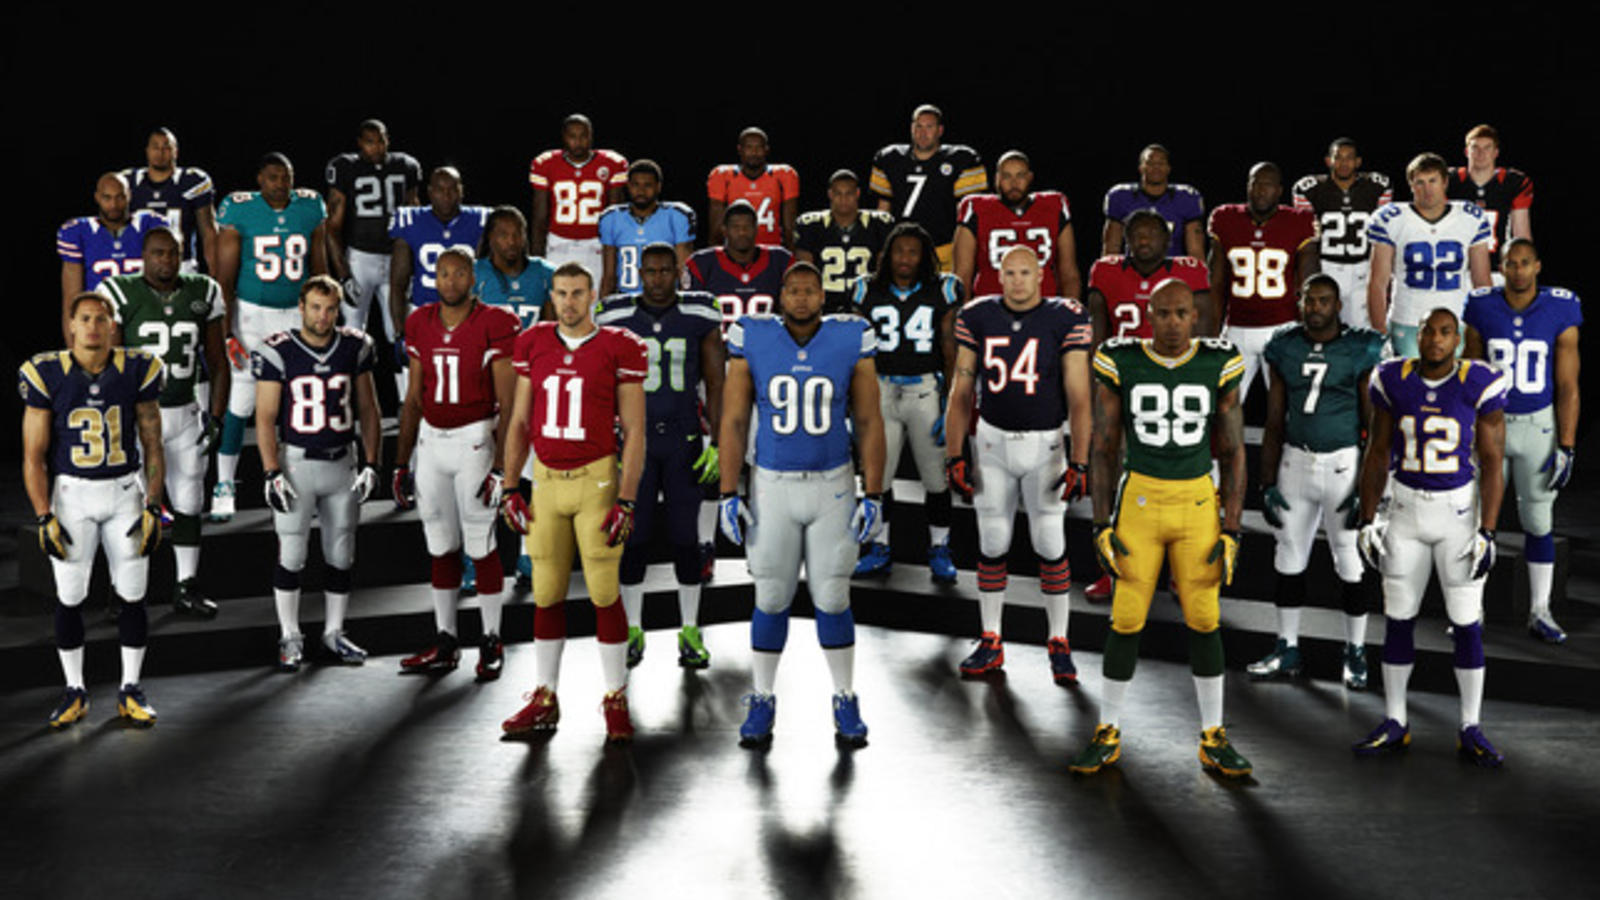 New Nike NFL jerseys available for pre-order April 15th - Nike News